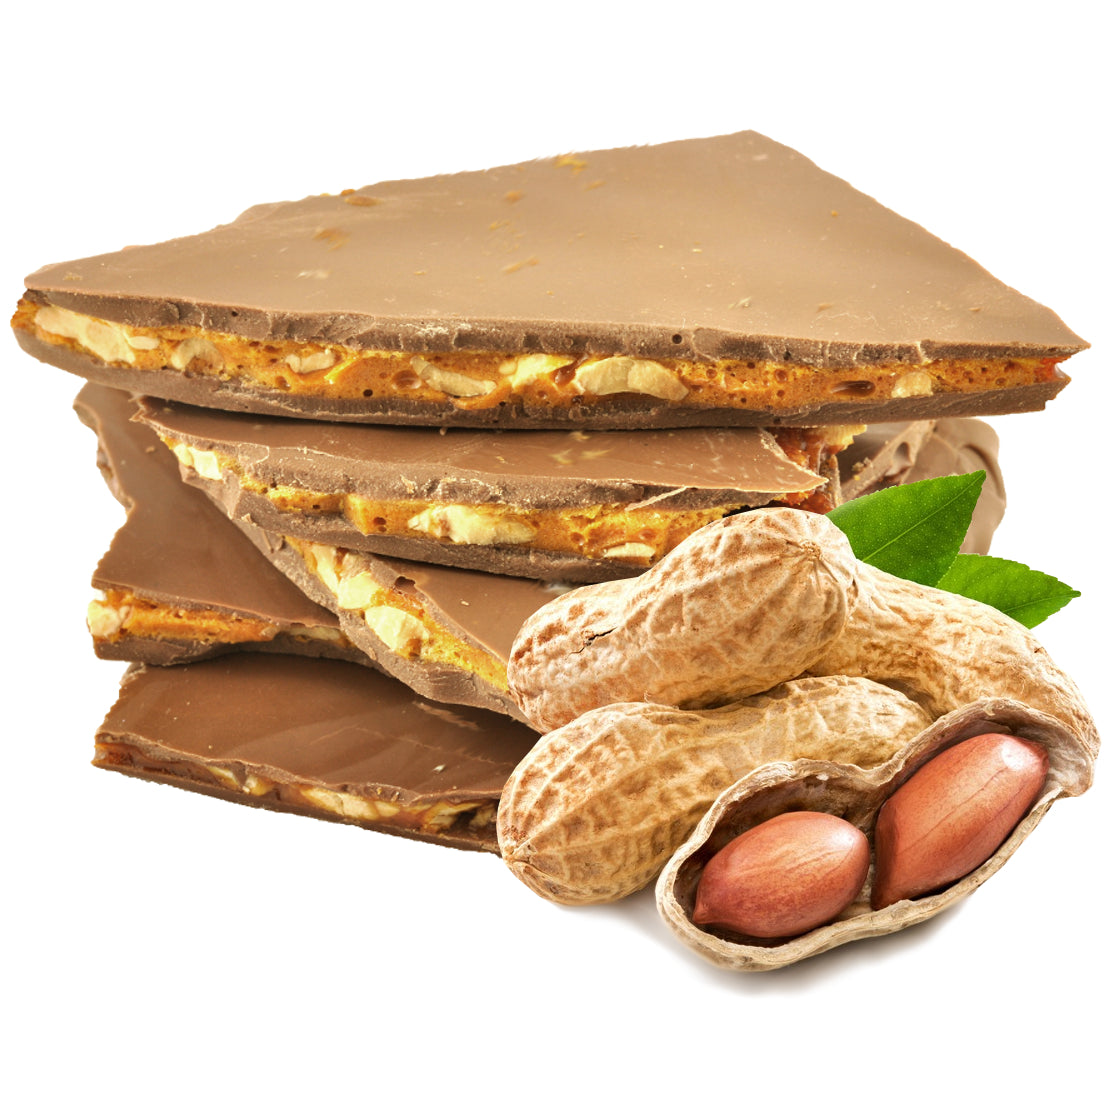 Peanut Brittle coated in Milk Chocolate 100g